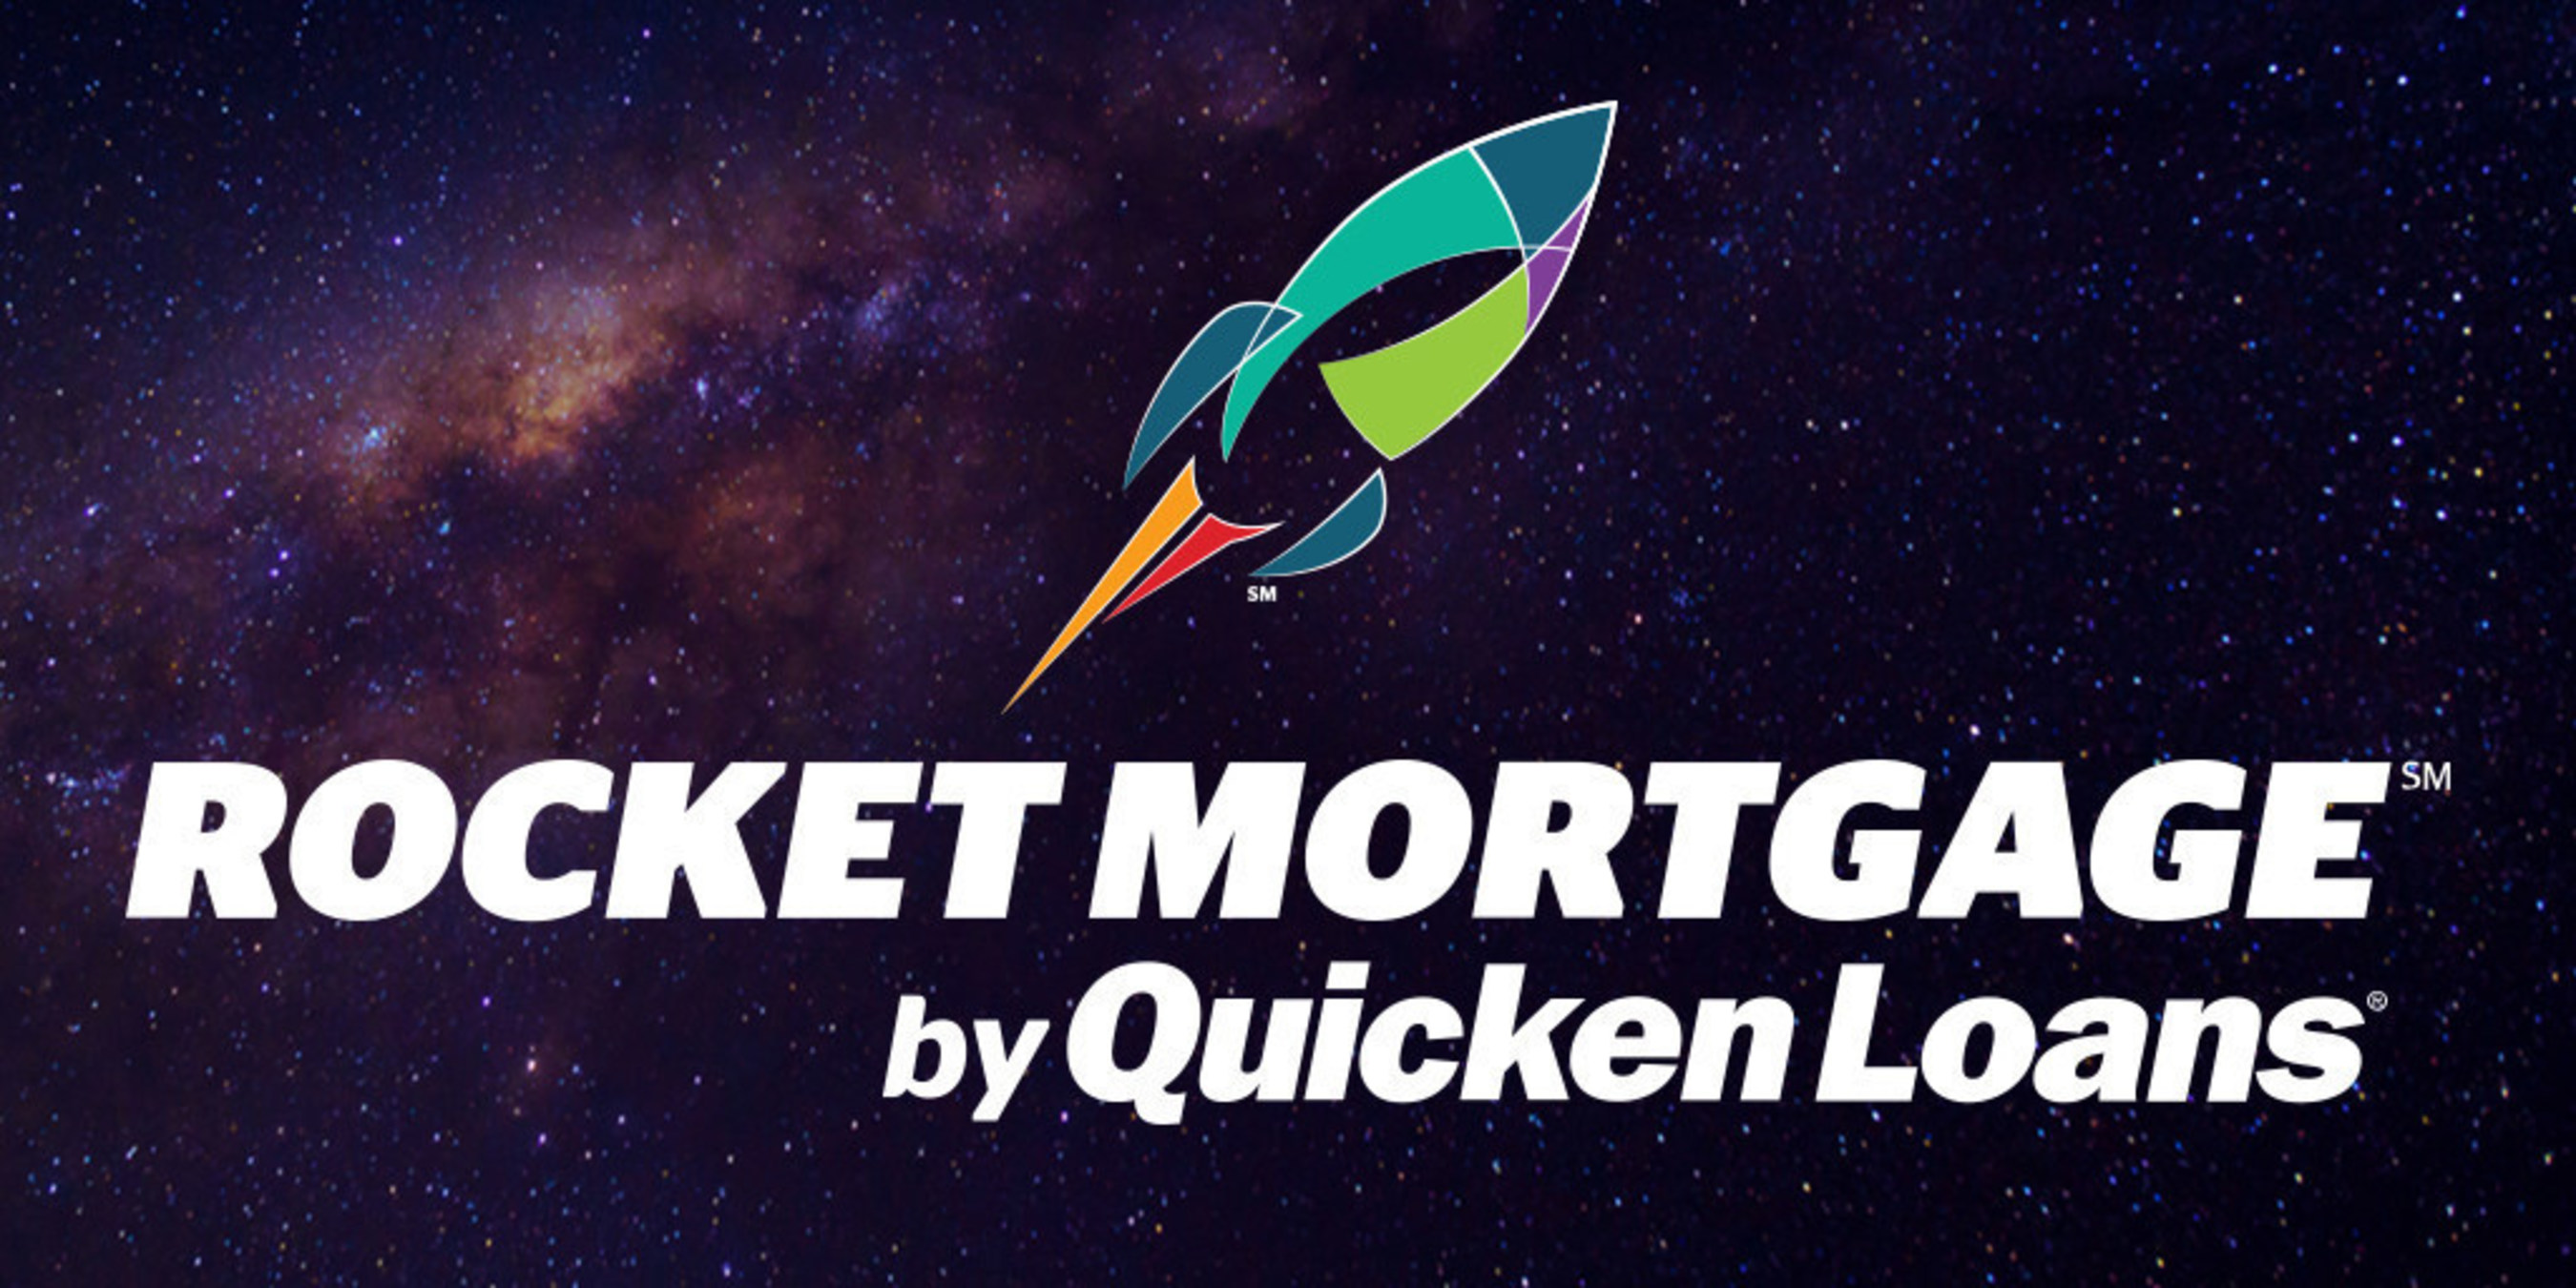 Rocket Mortgage by Quicken Loans